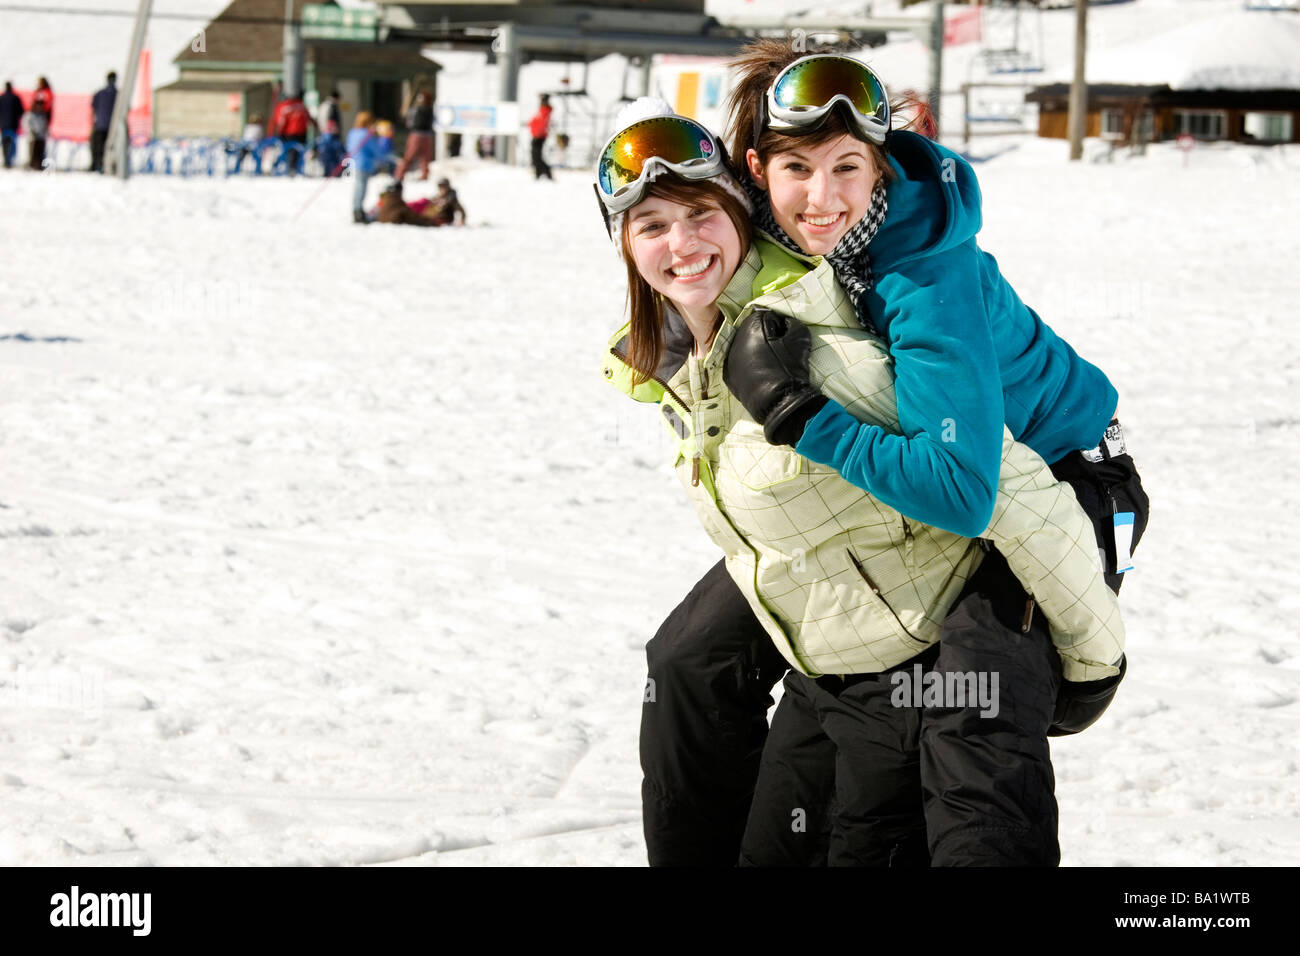 Two sisters in ski suits happy to be outside on a nice day during winter - Stock Image